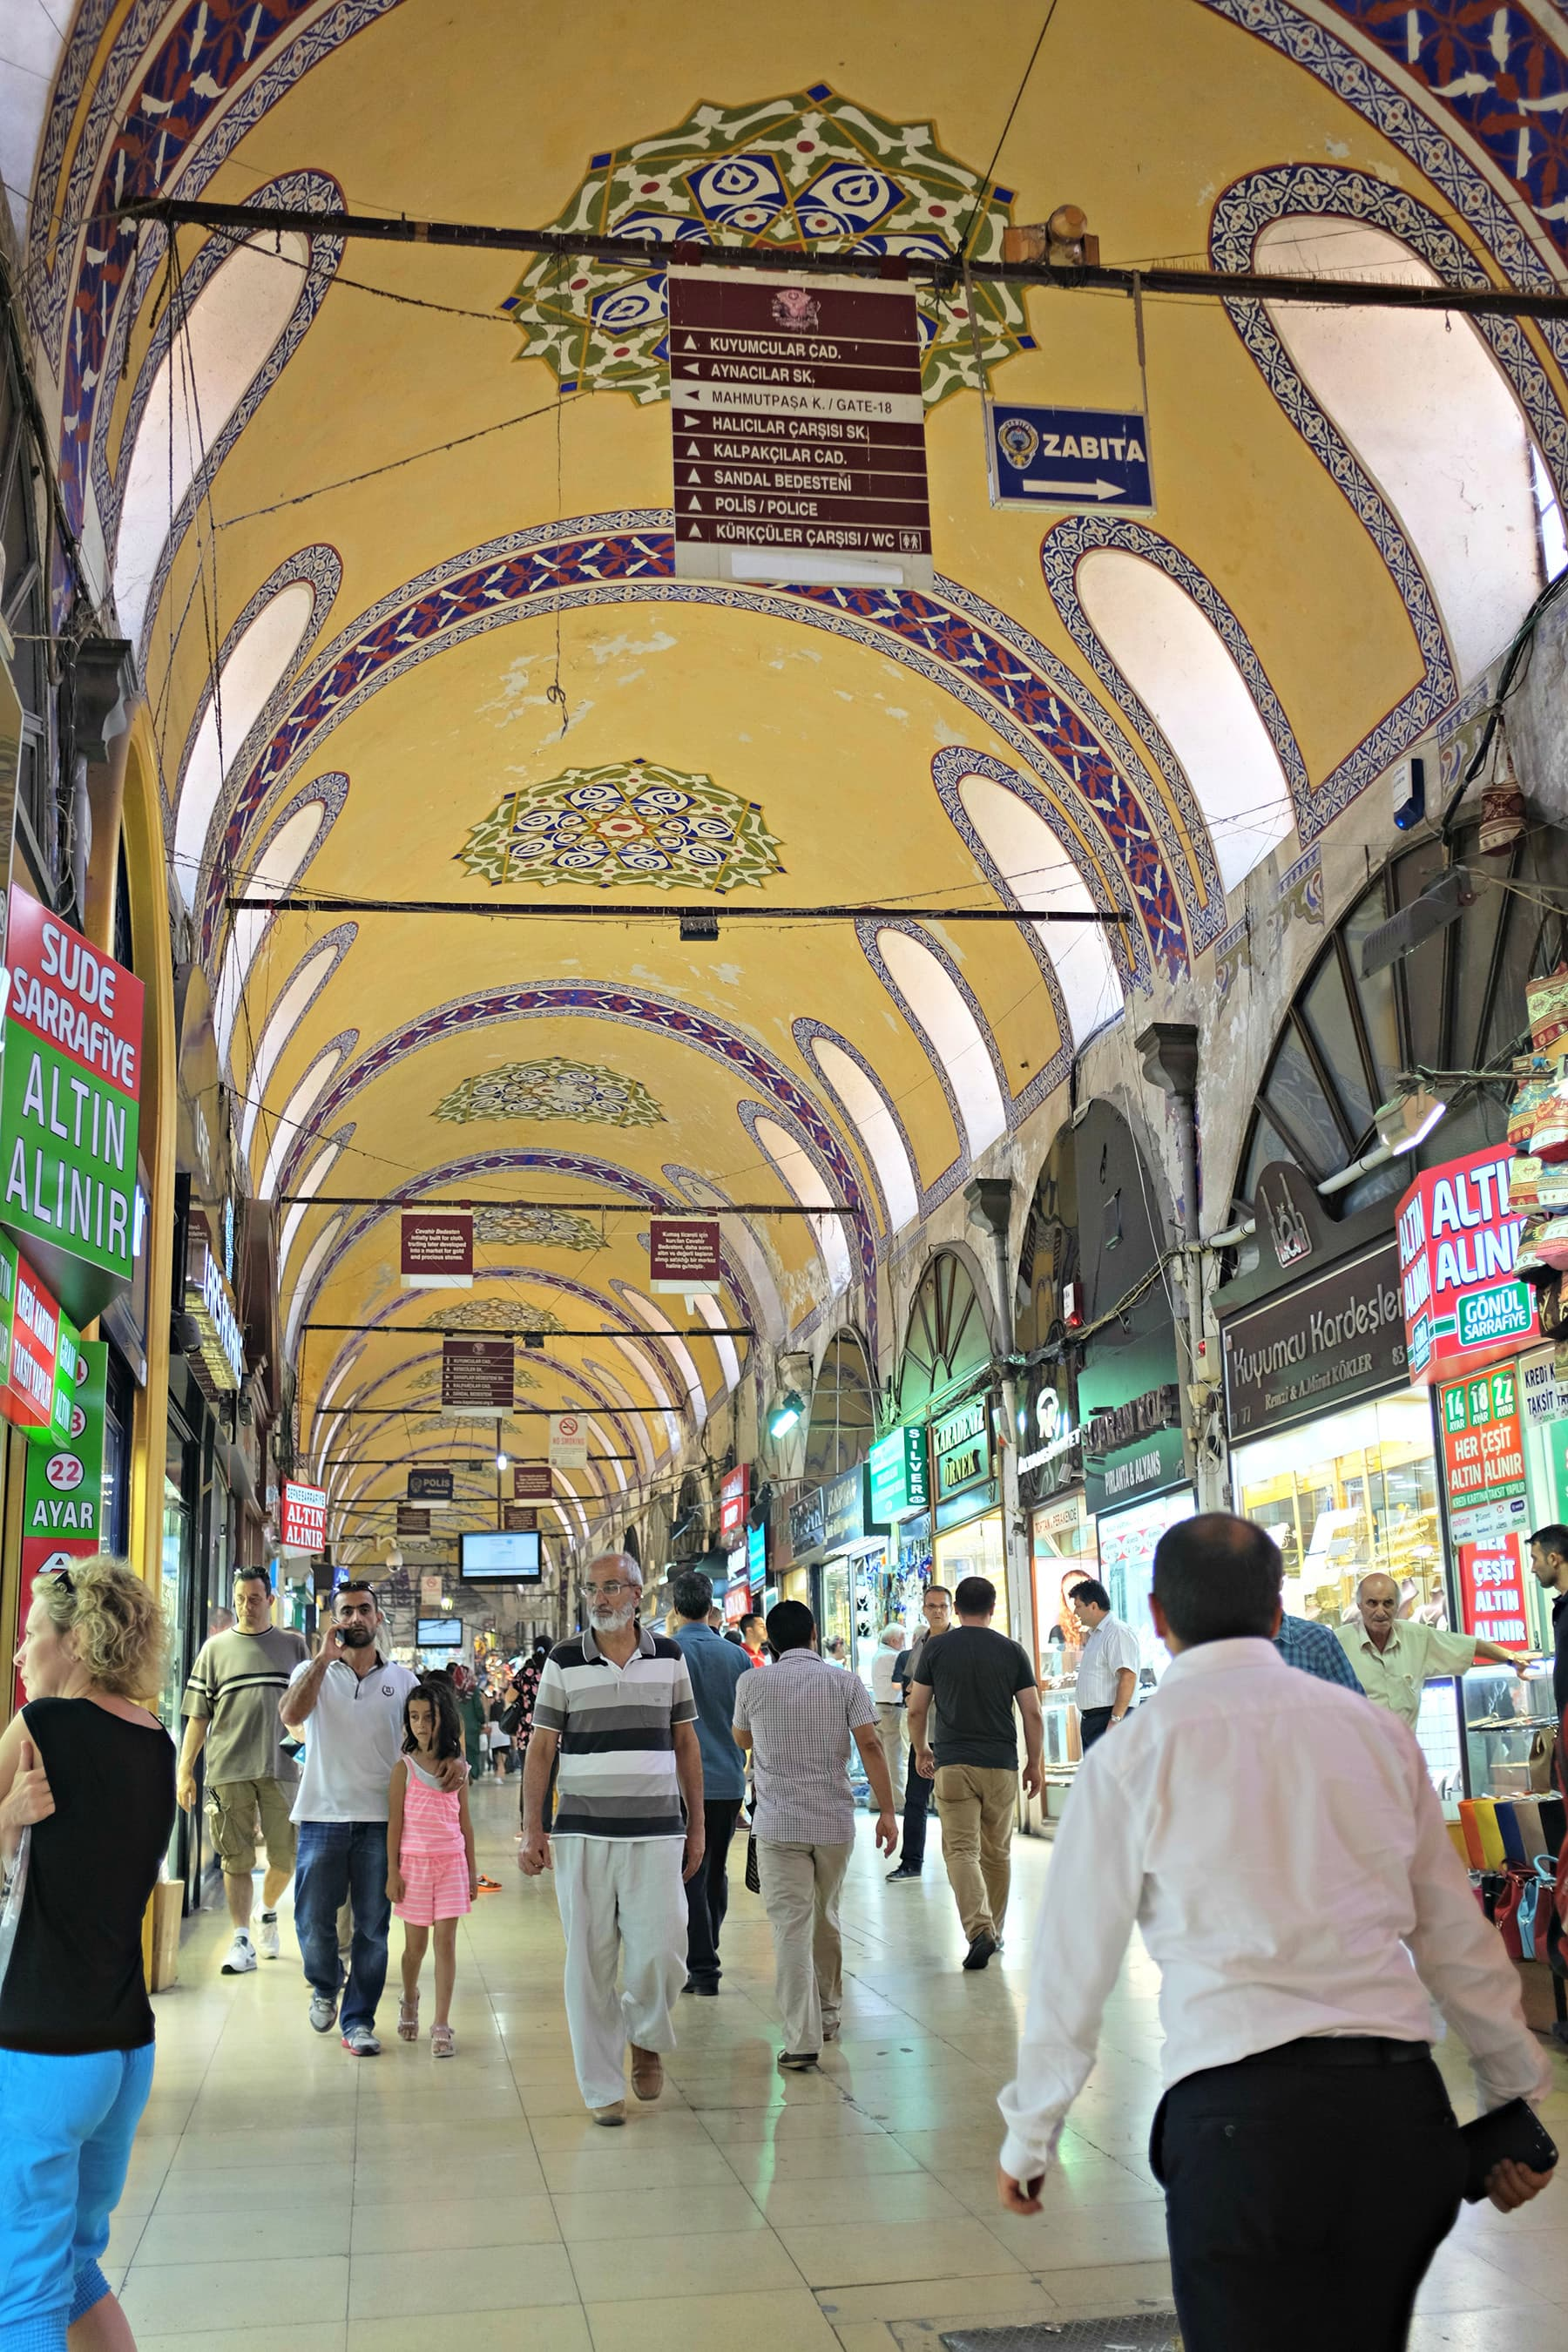 The narrow lanes of Grand Bazaar are a delight to walk in.